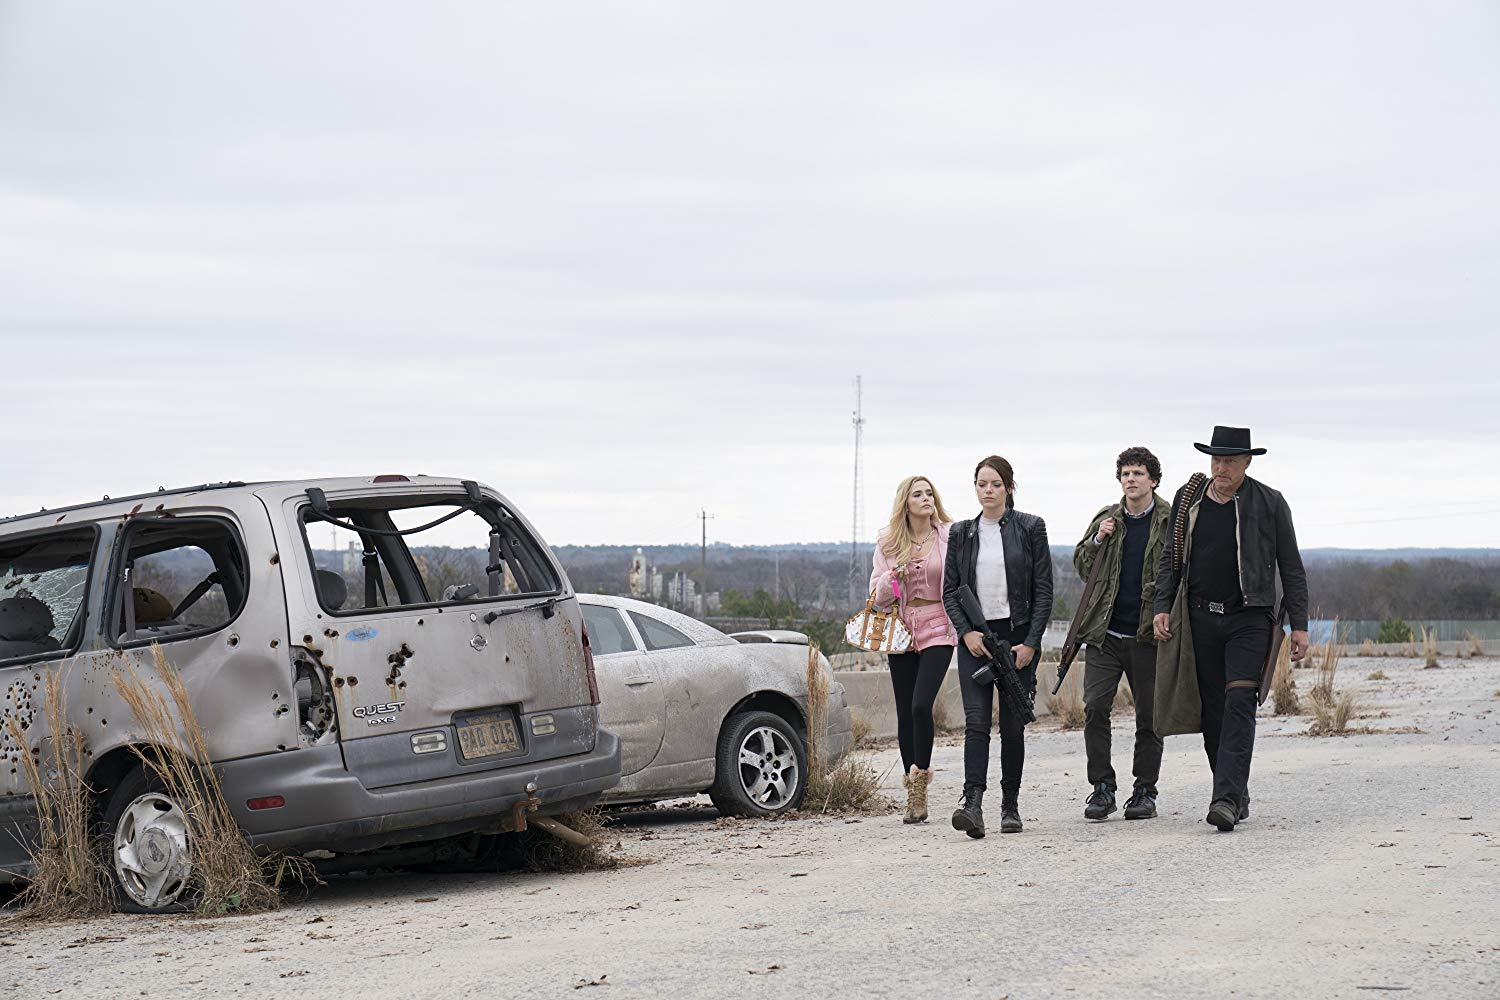 Zombieland: Double Tap, movie review, Lucas Mirabella